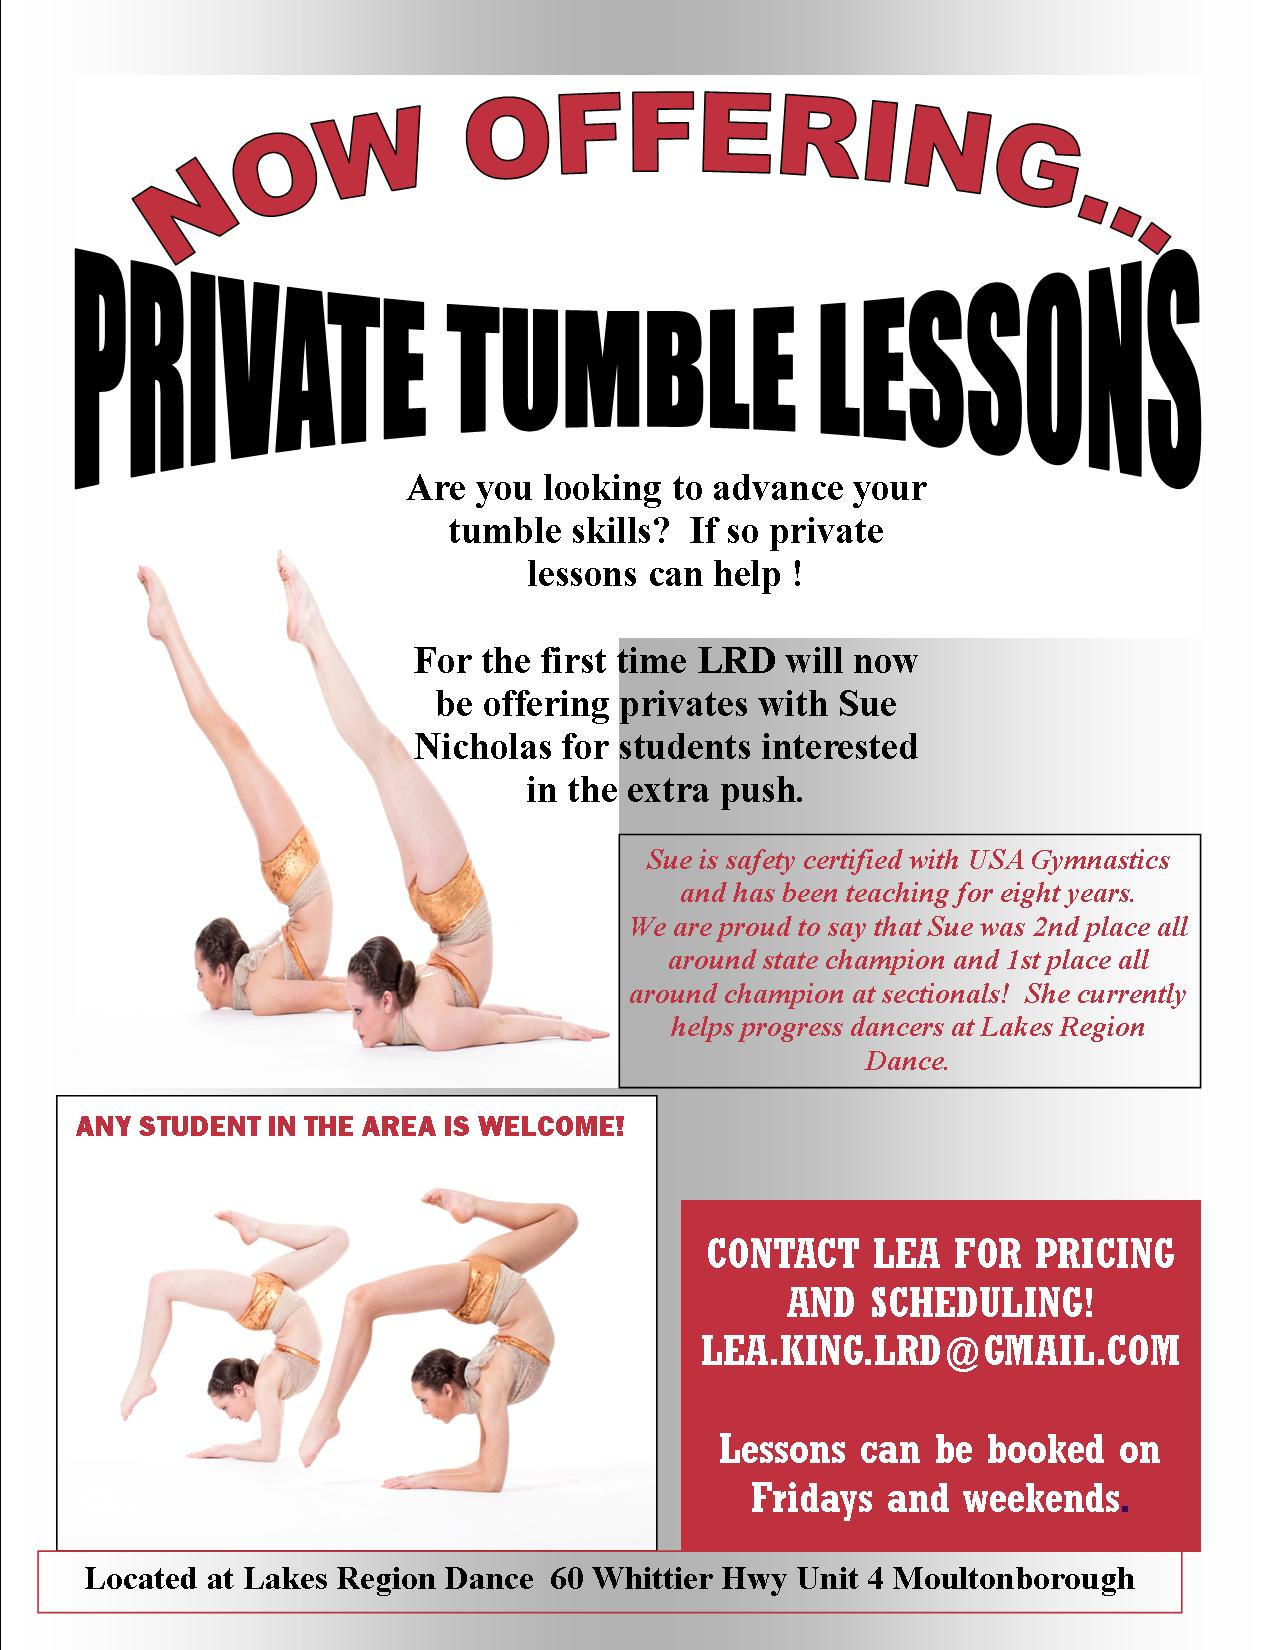 privatetumblelessons